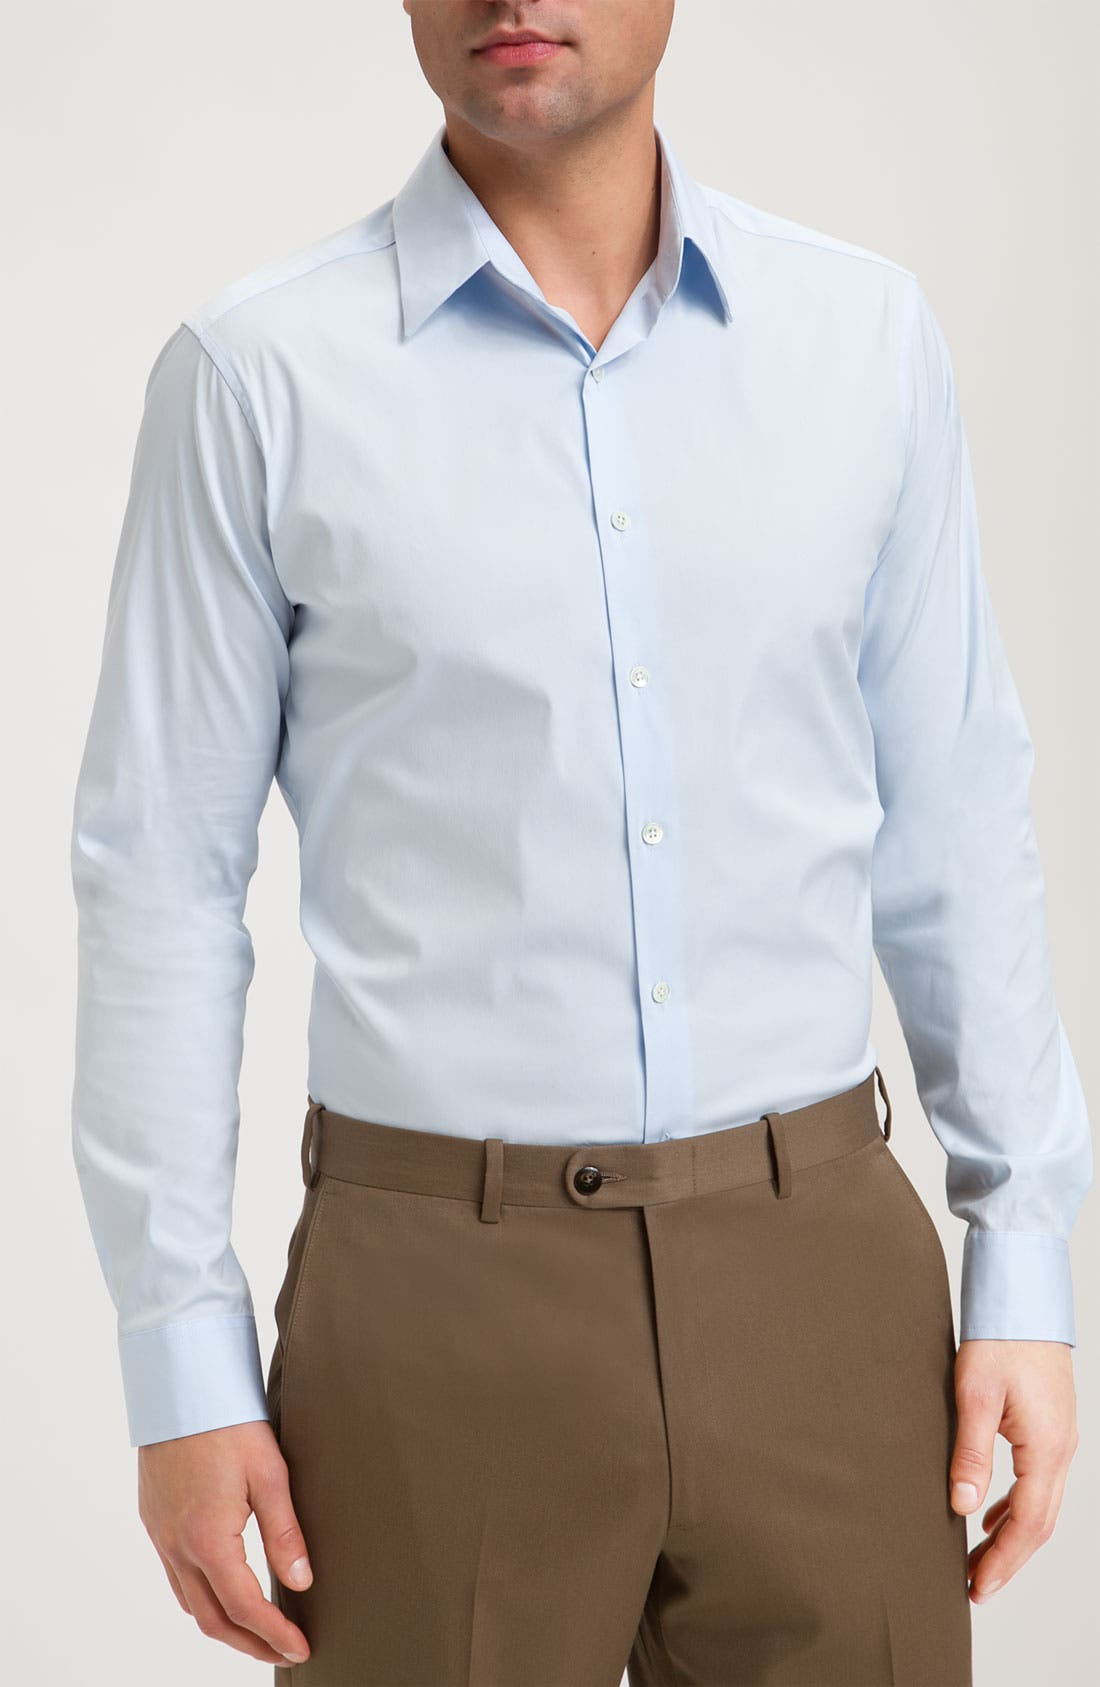 Alternate Image 1 Selected - Theory 'Sylvain Wealth' Trim Fit Sport Shirt